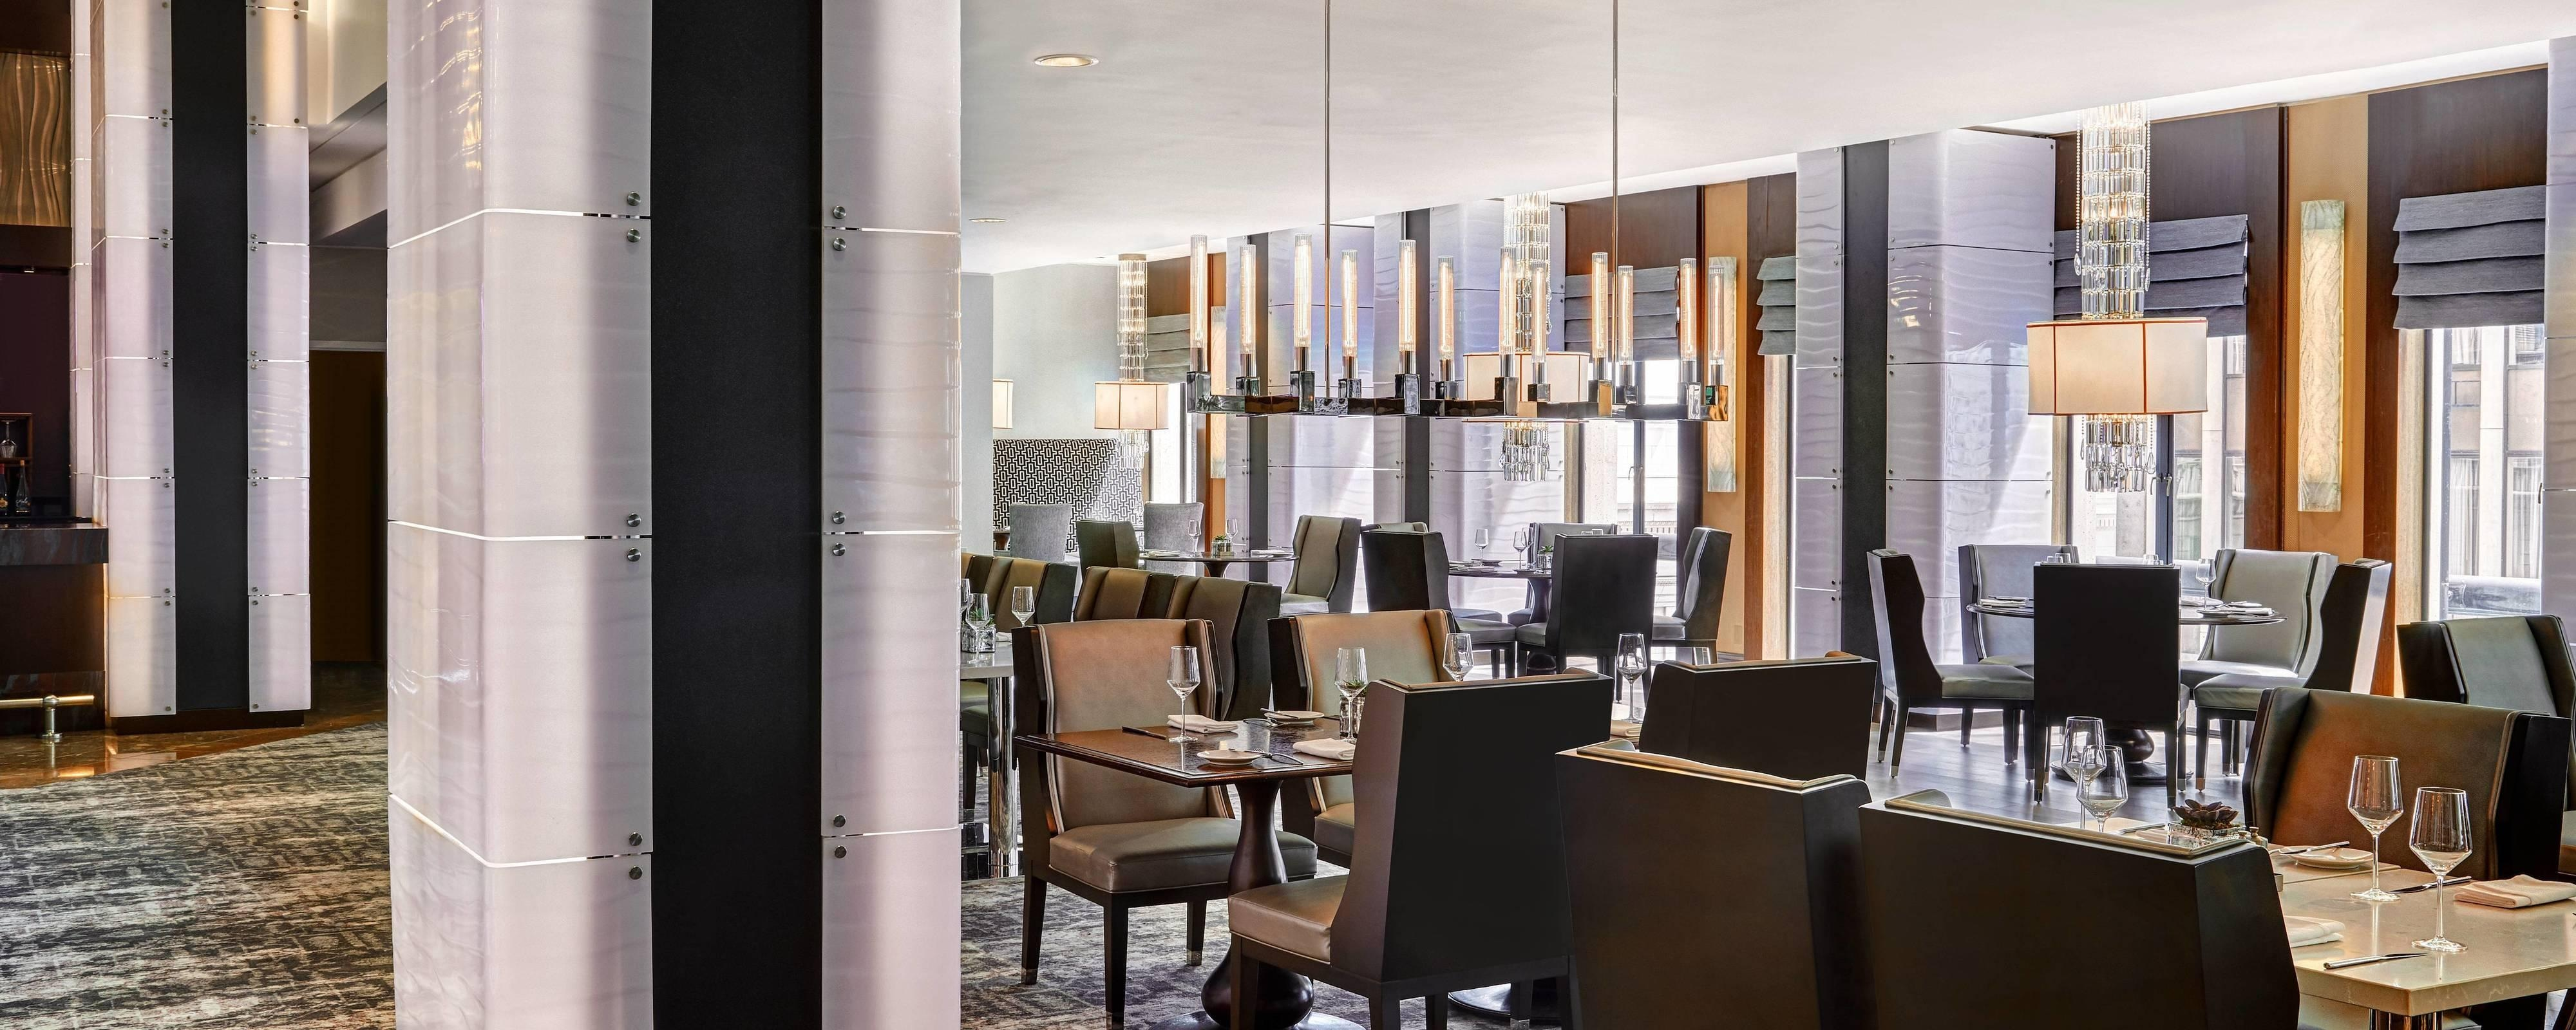 Bars In Union Square San Francisco Jw Marriott